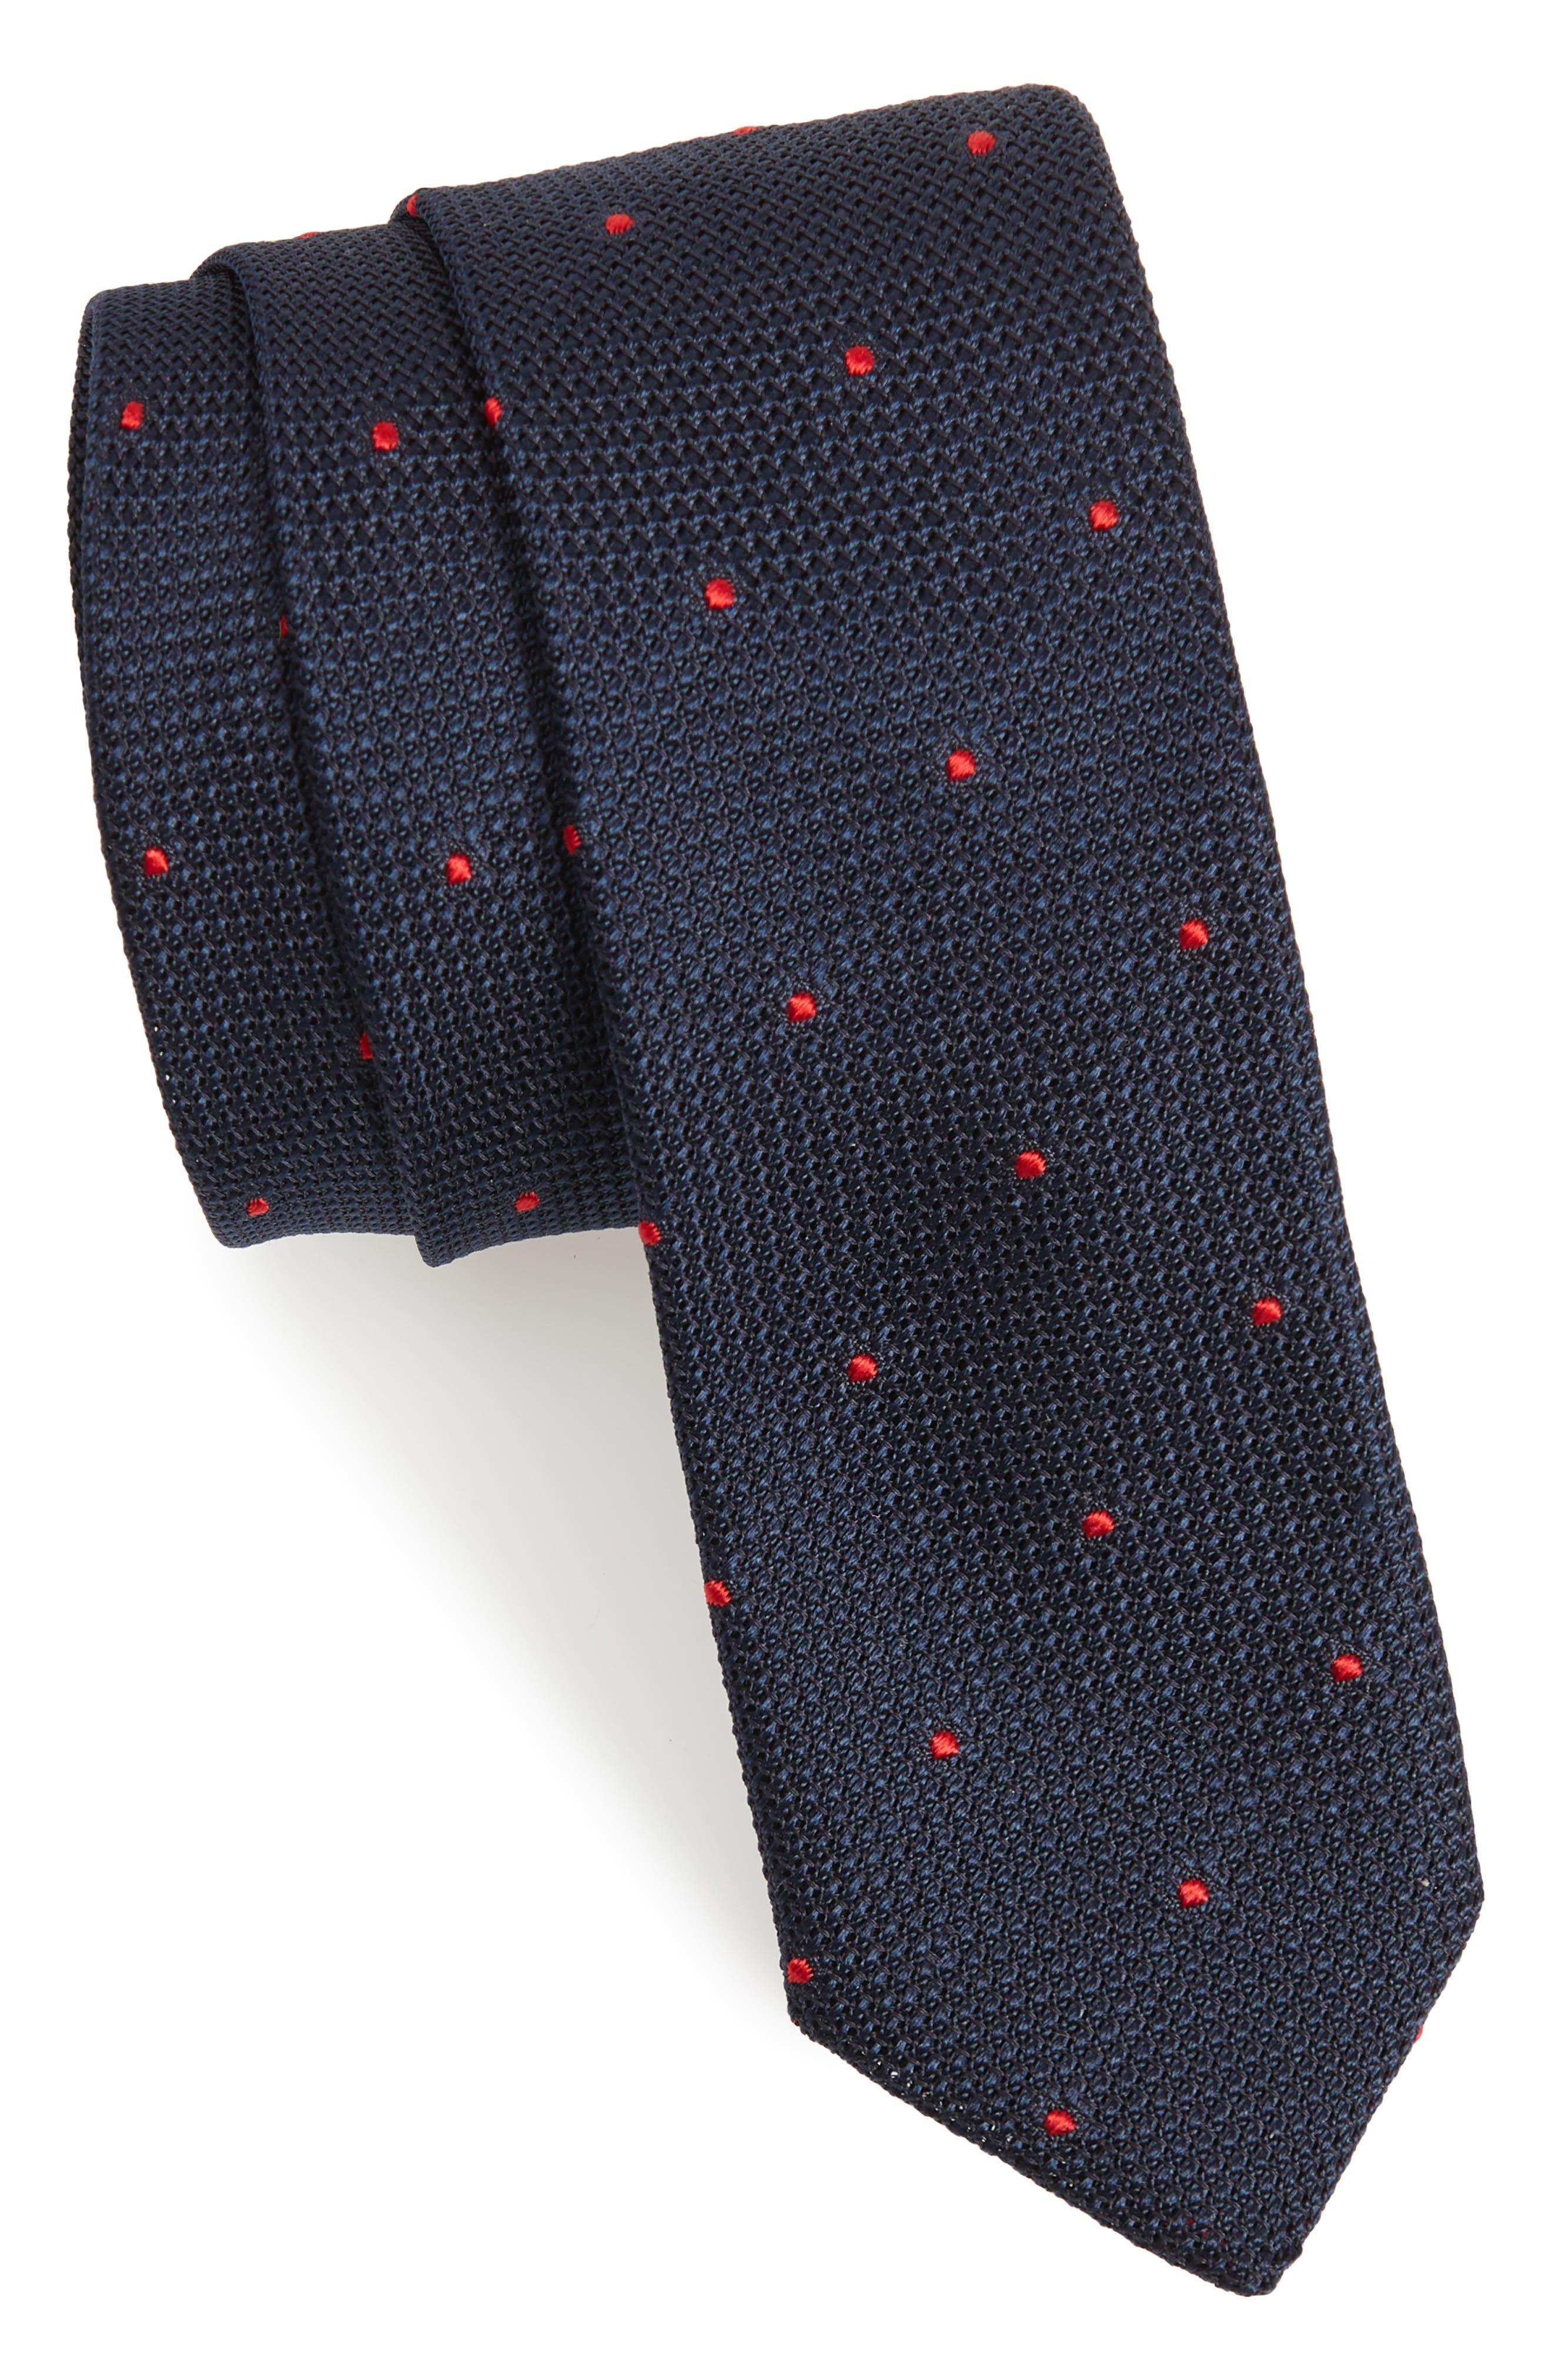 Dot Silk Skinny Tie,                             Main thumbnail 1, color,                             NAVY/ RED